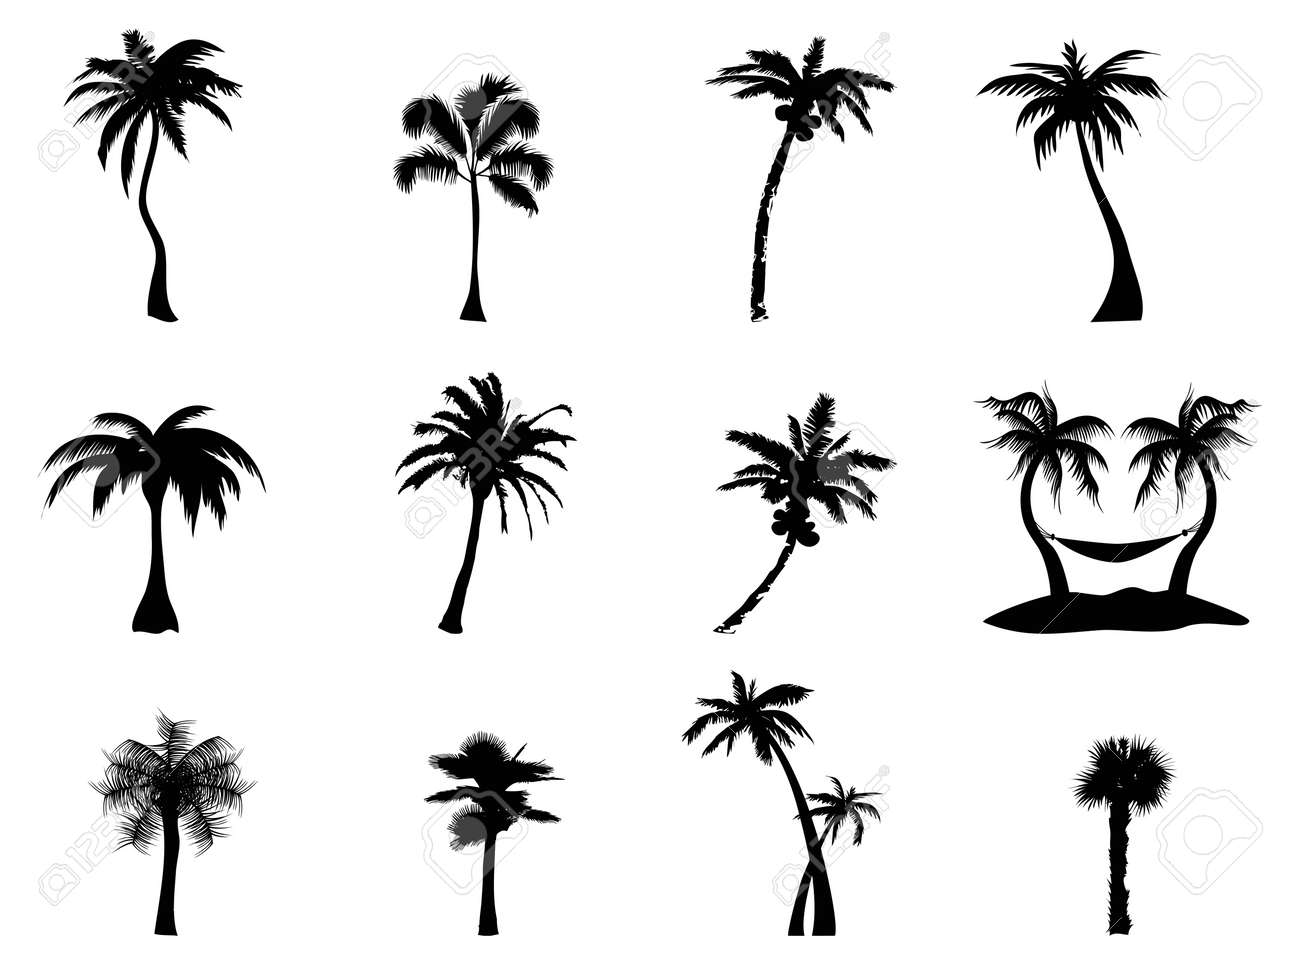 black silhouette of palm trees on white background royalty free